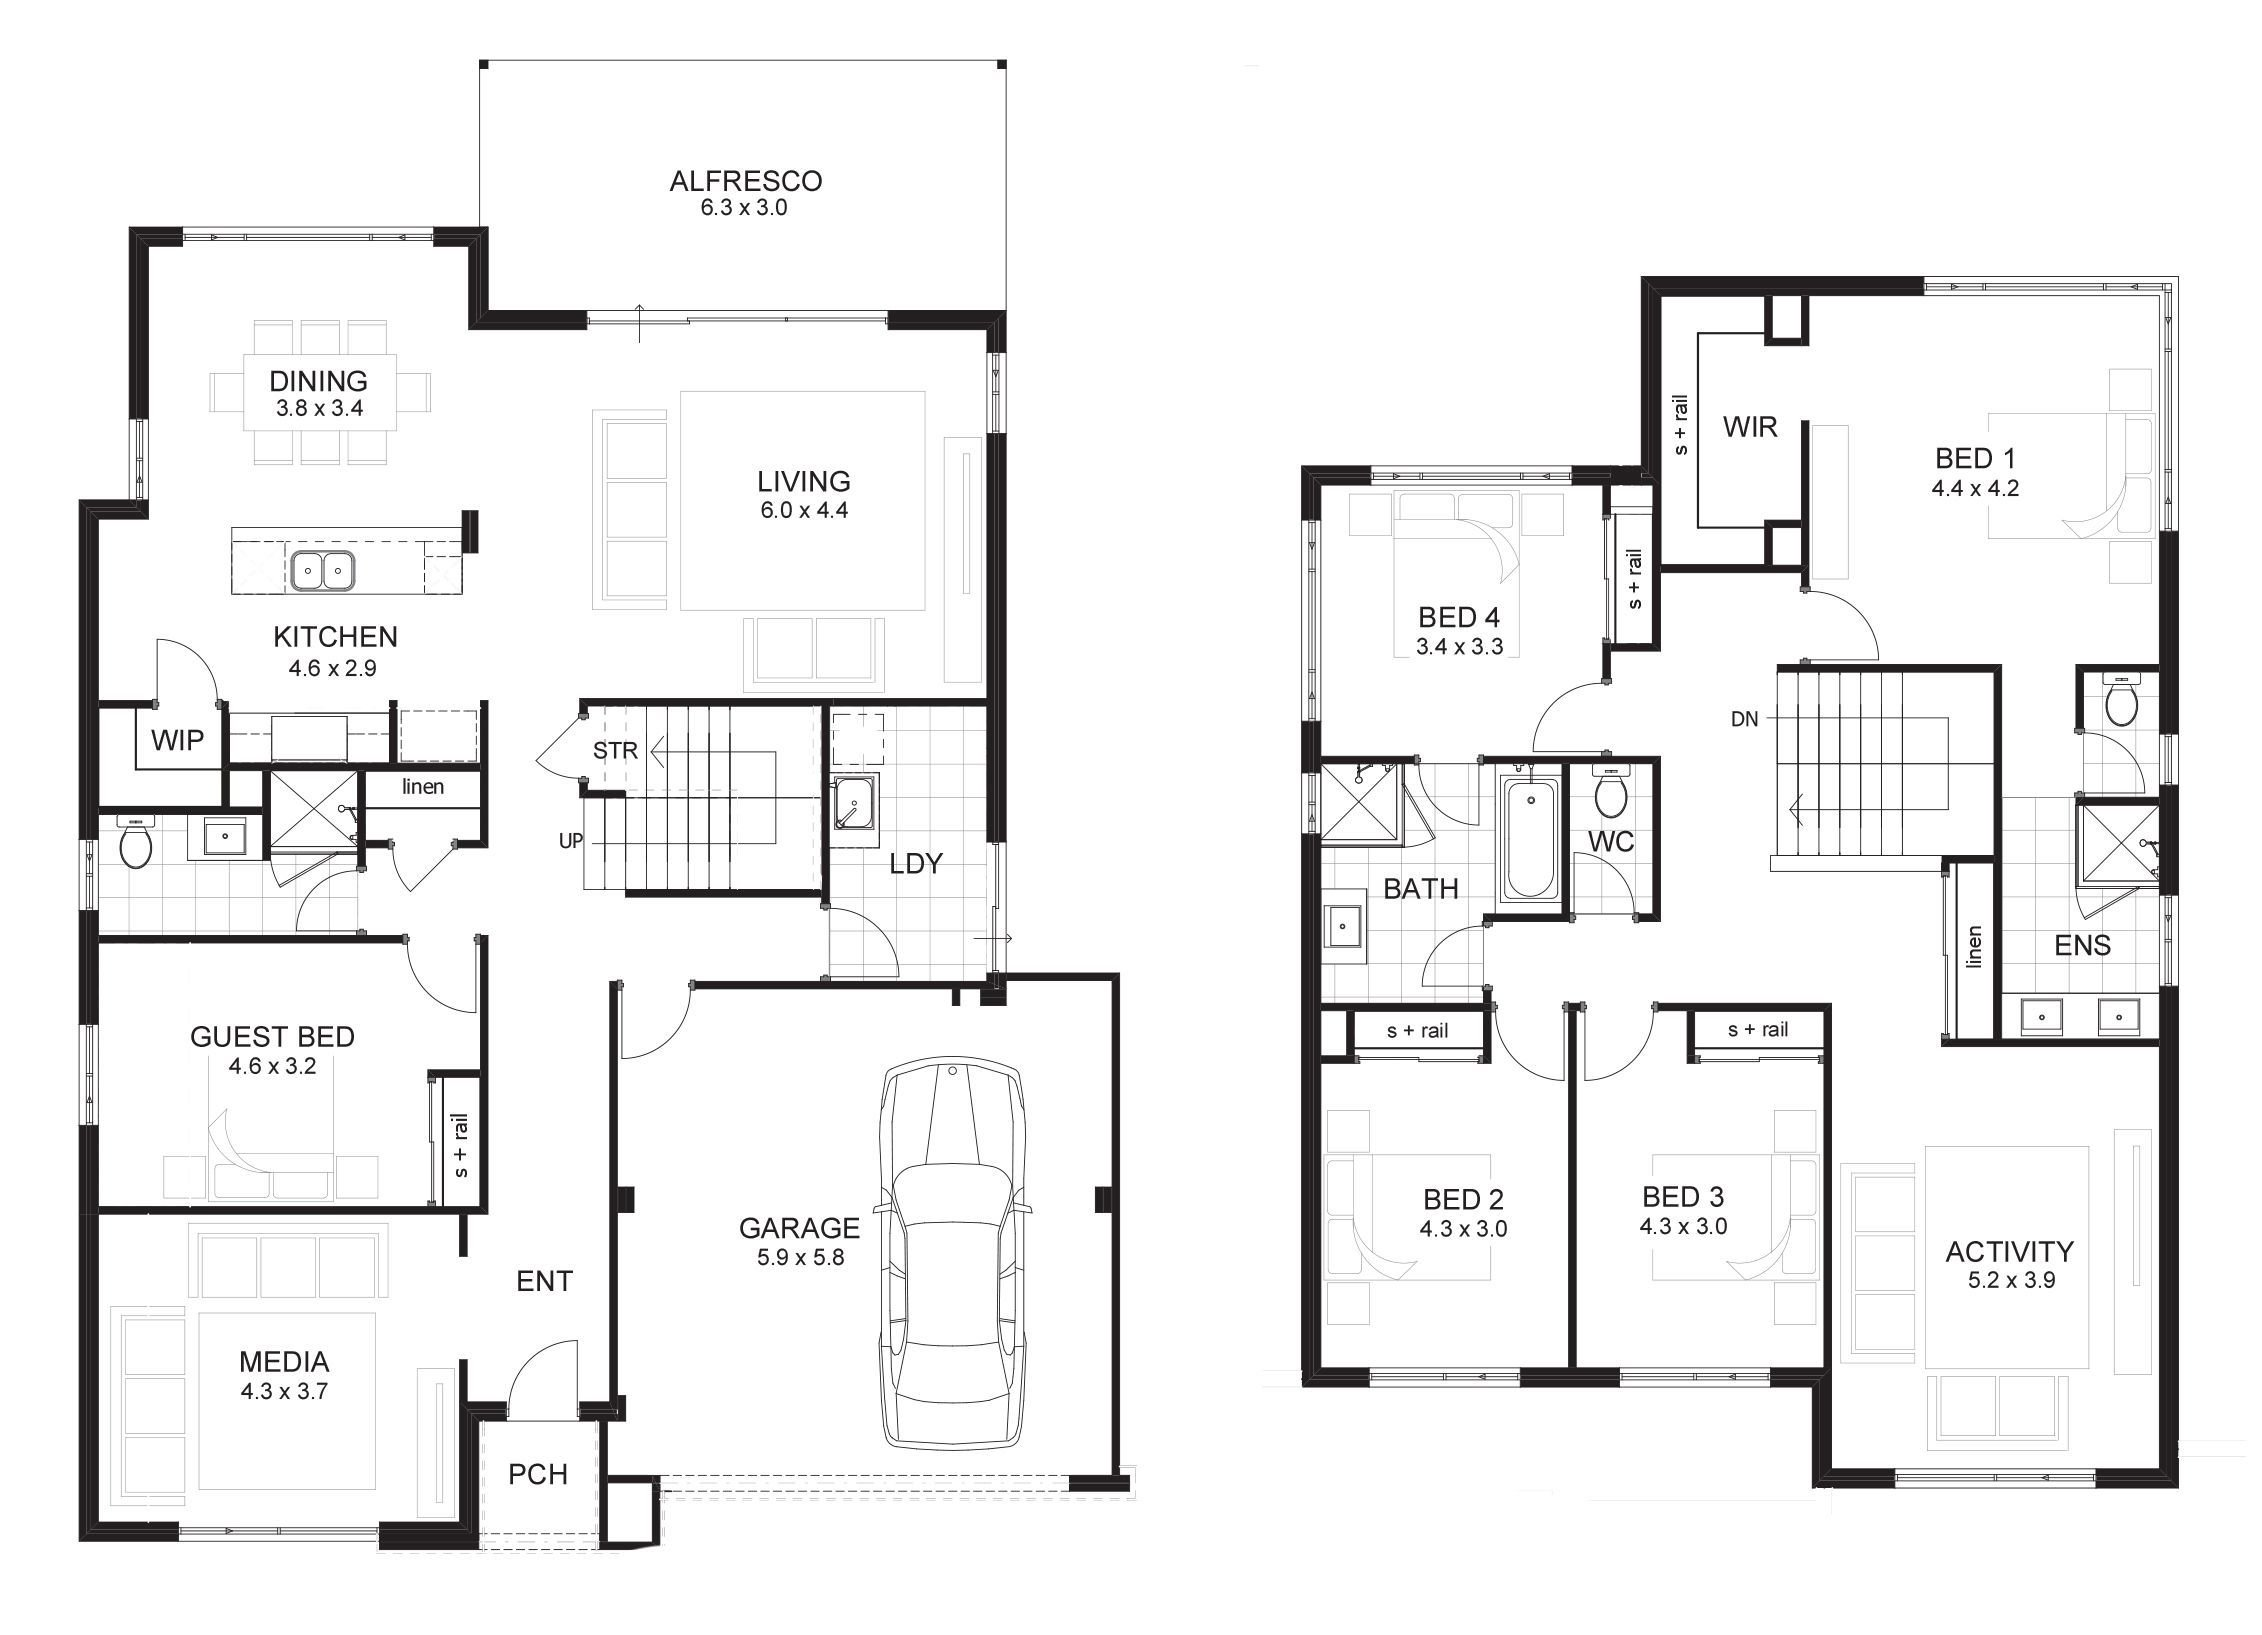 Best 6 Bedroom House Plans Perth Corepad Info 5 Bedroom House Plans Garage House Plans И House Plans With Pictures